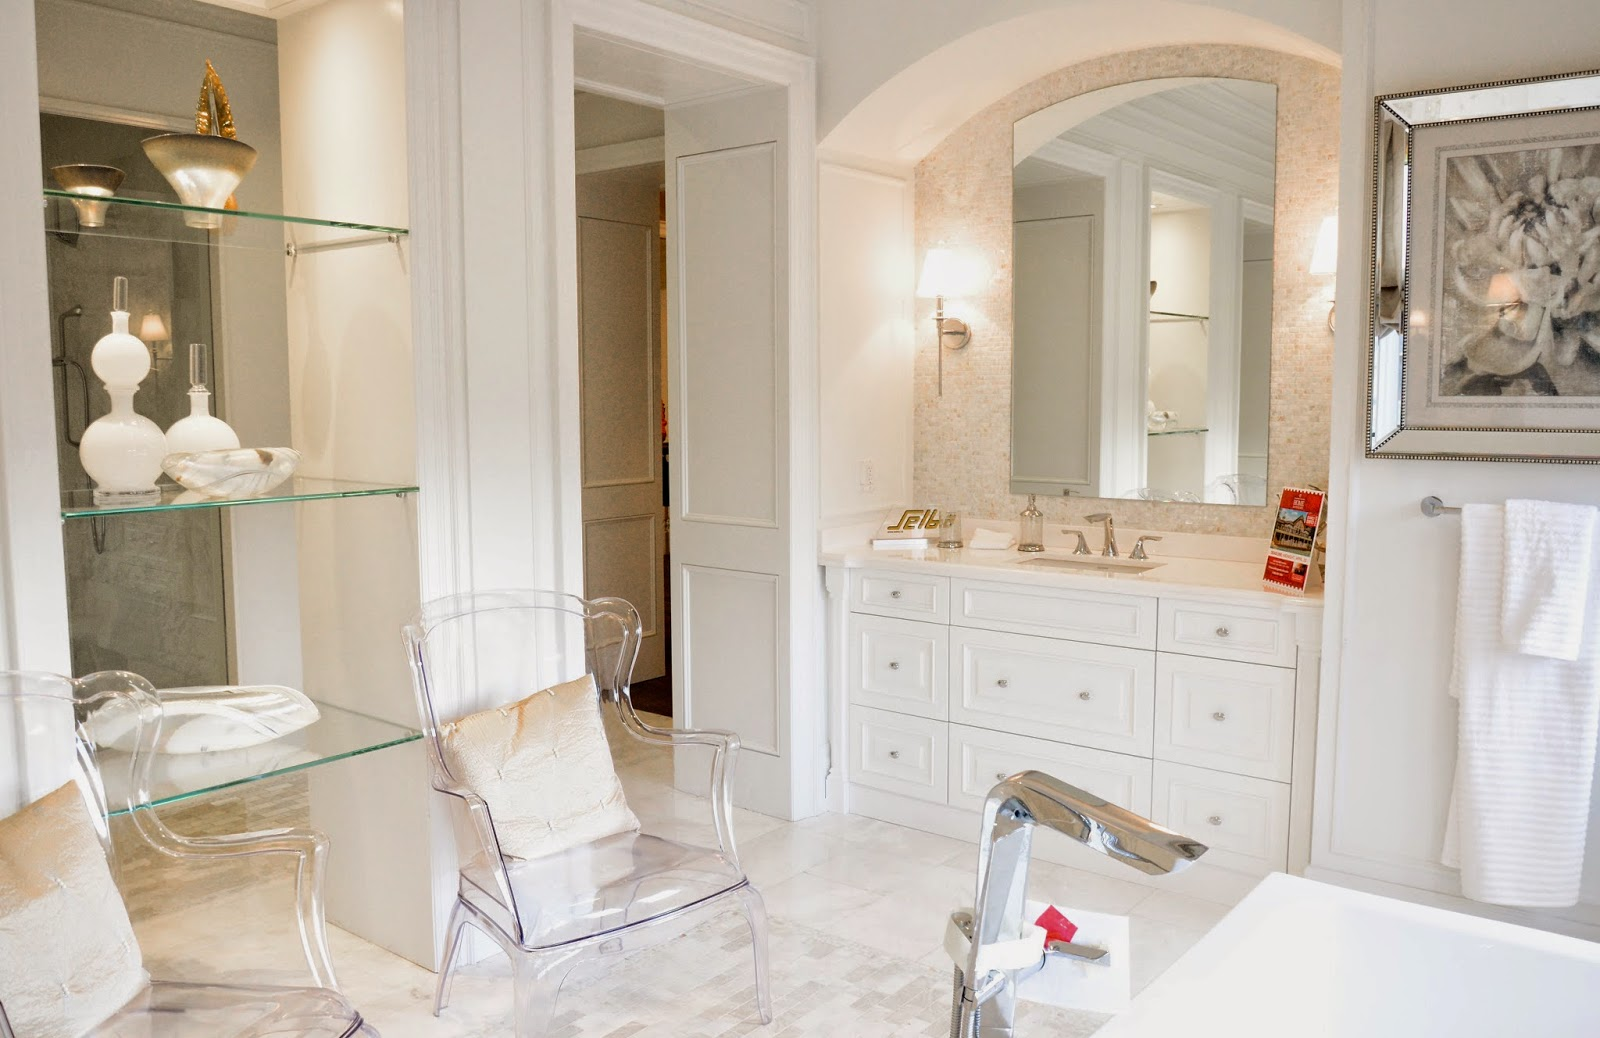 PMLOTTO KLEINBURG SHOWROOM: GLAMOROUS MASTER ENSUITE